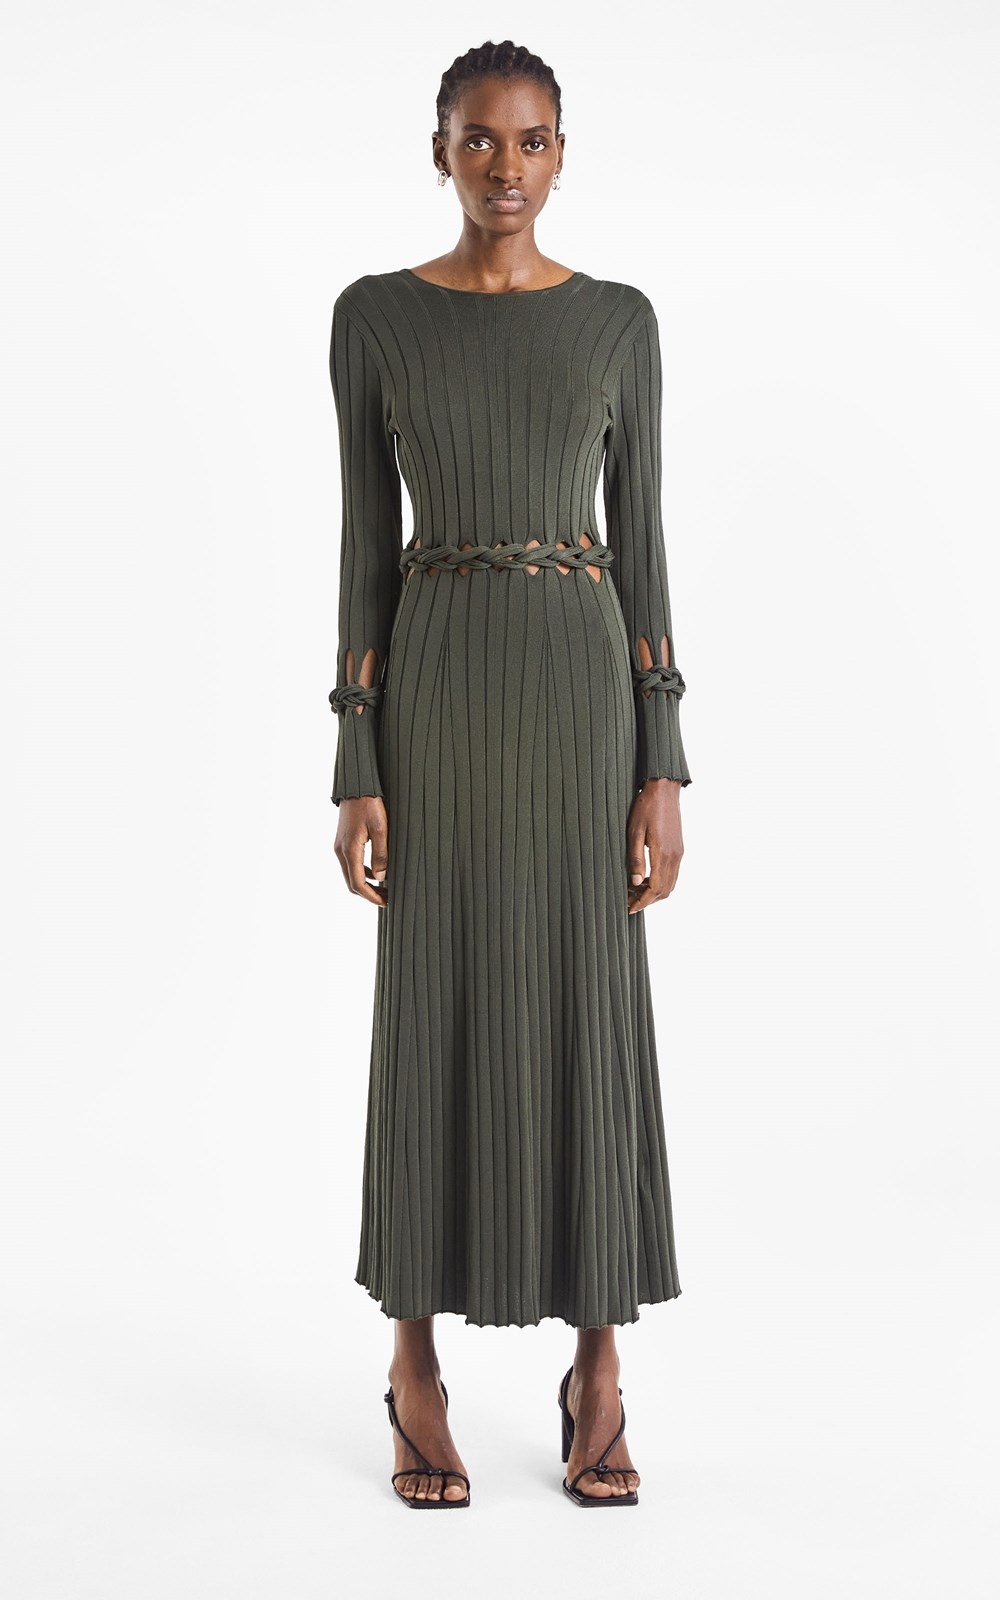 Knitwear | BRAID LS DRESS